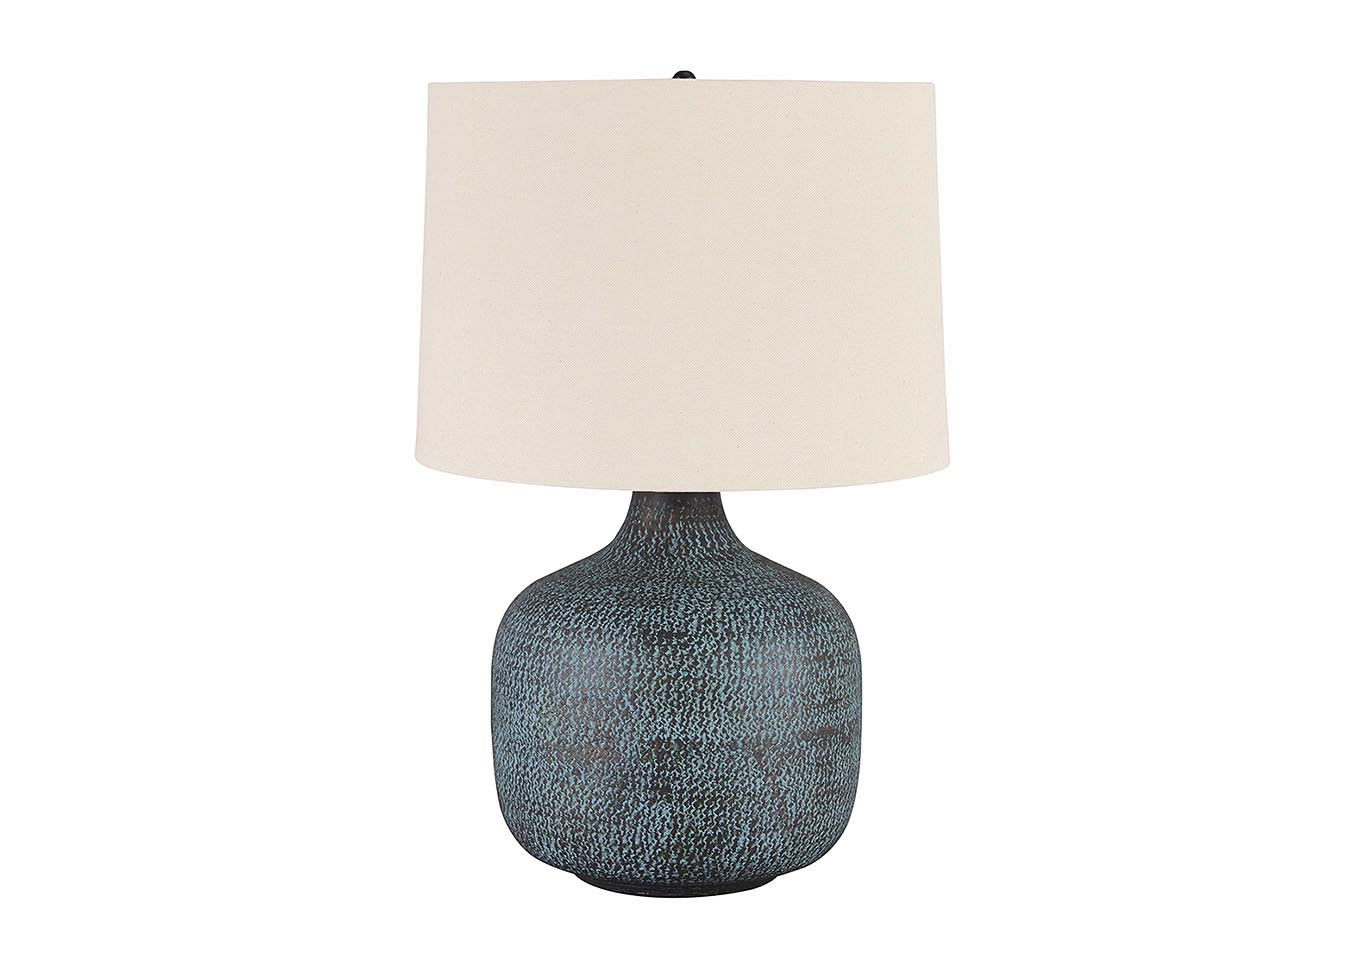 Malthace Patina Metal Table Lamp,Signature Design By Ashley